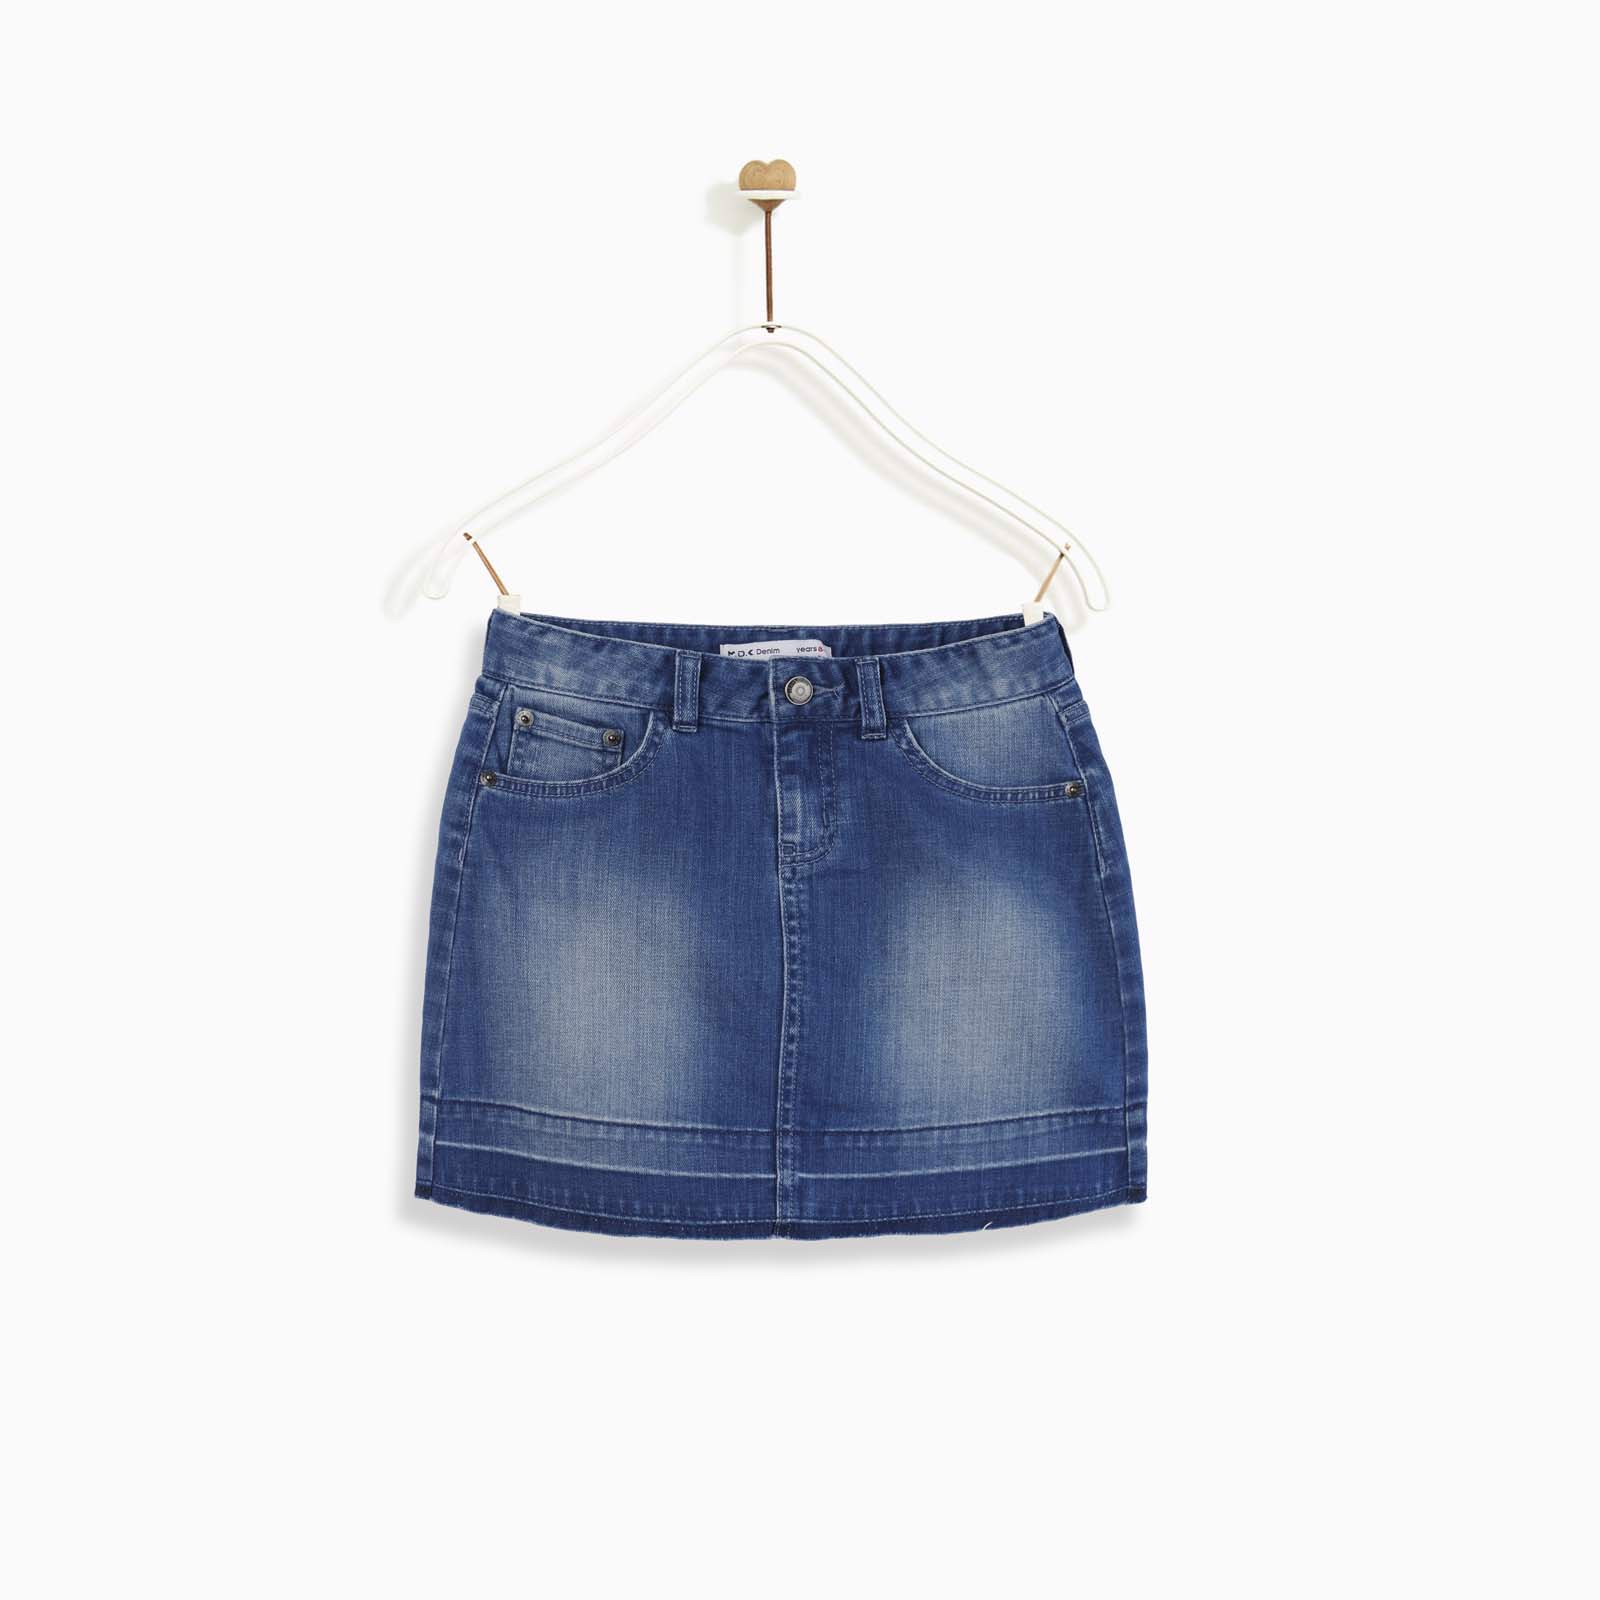 Chân váy Pull-on denim release hem